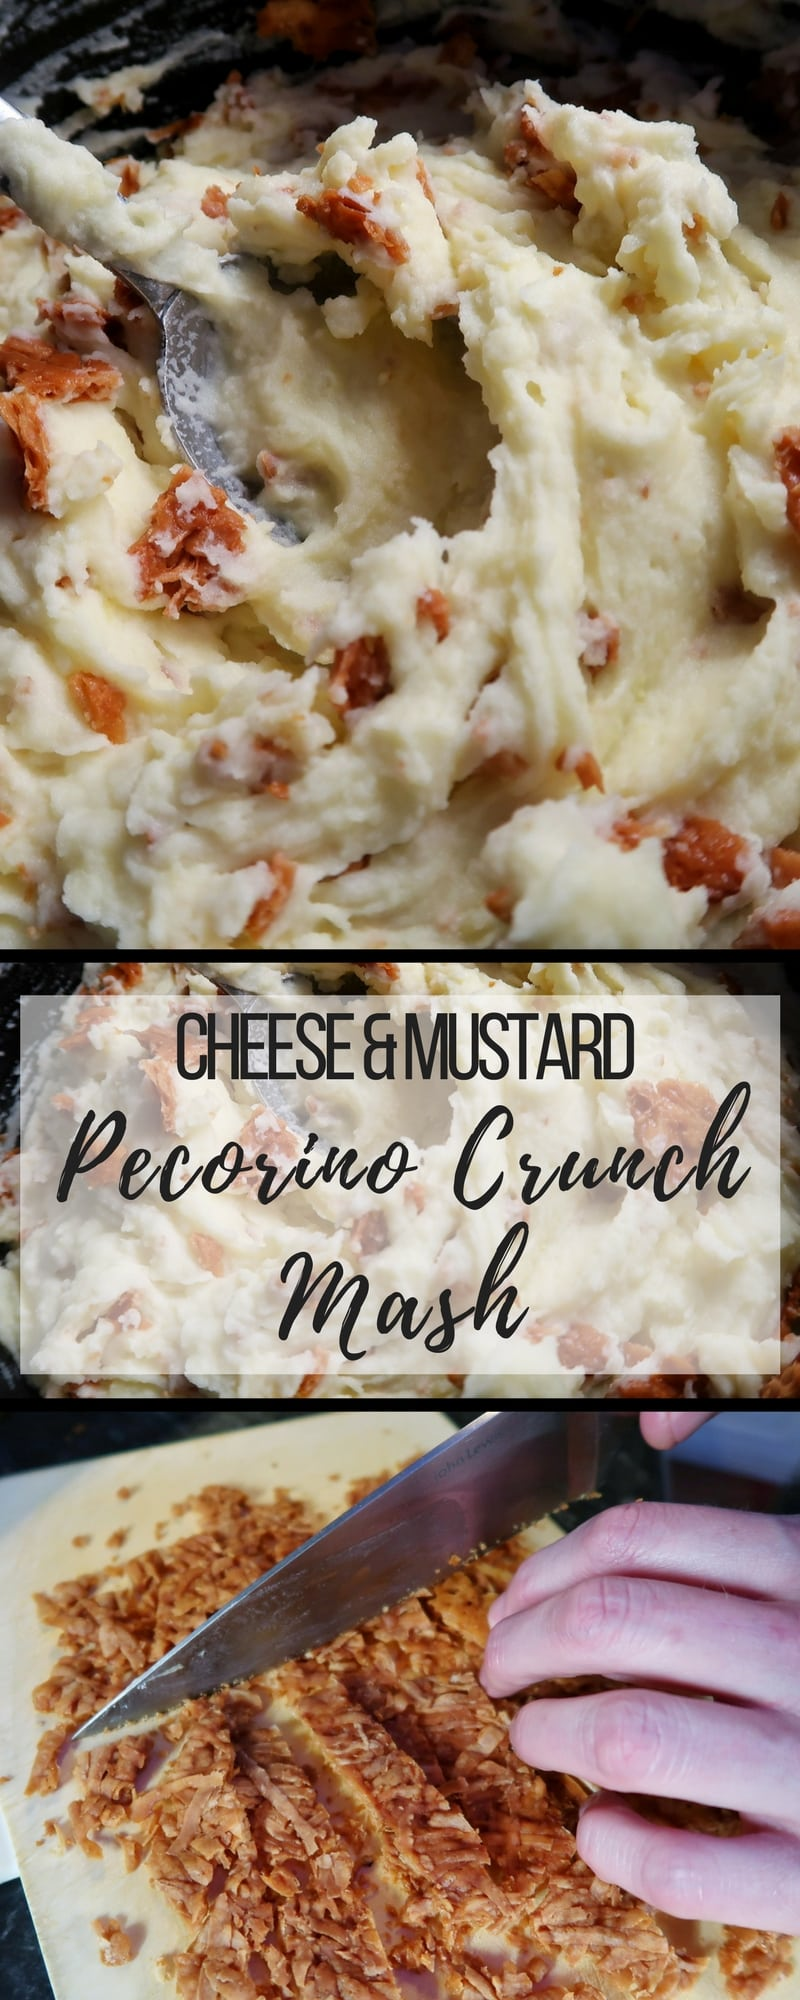 Cheese and Mustard Mash with Pecorino Crunch - A recipe for #mash with #pecorino crunch. A #recipe that takes mash to the next level.